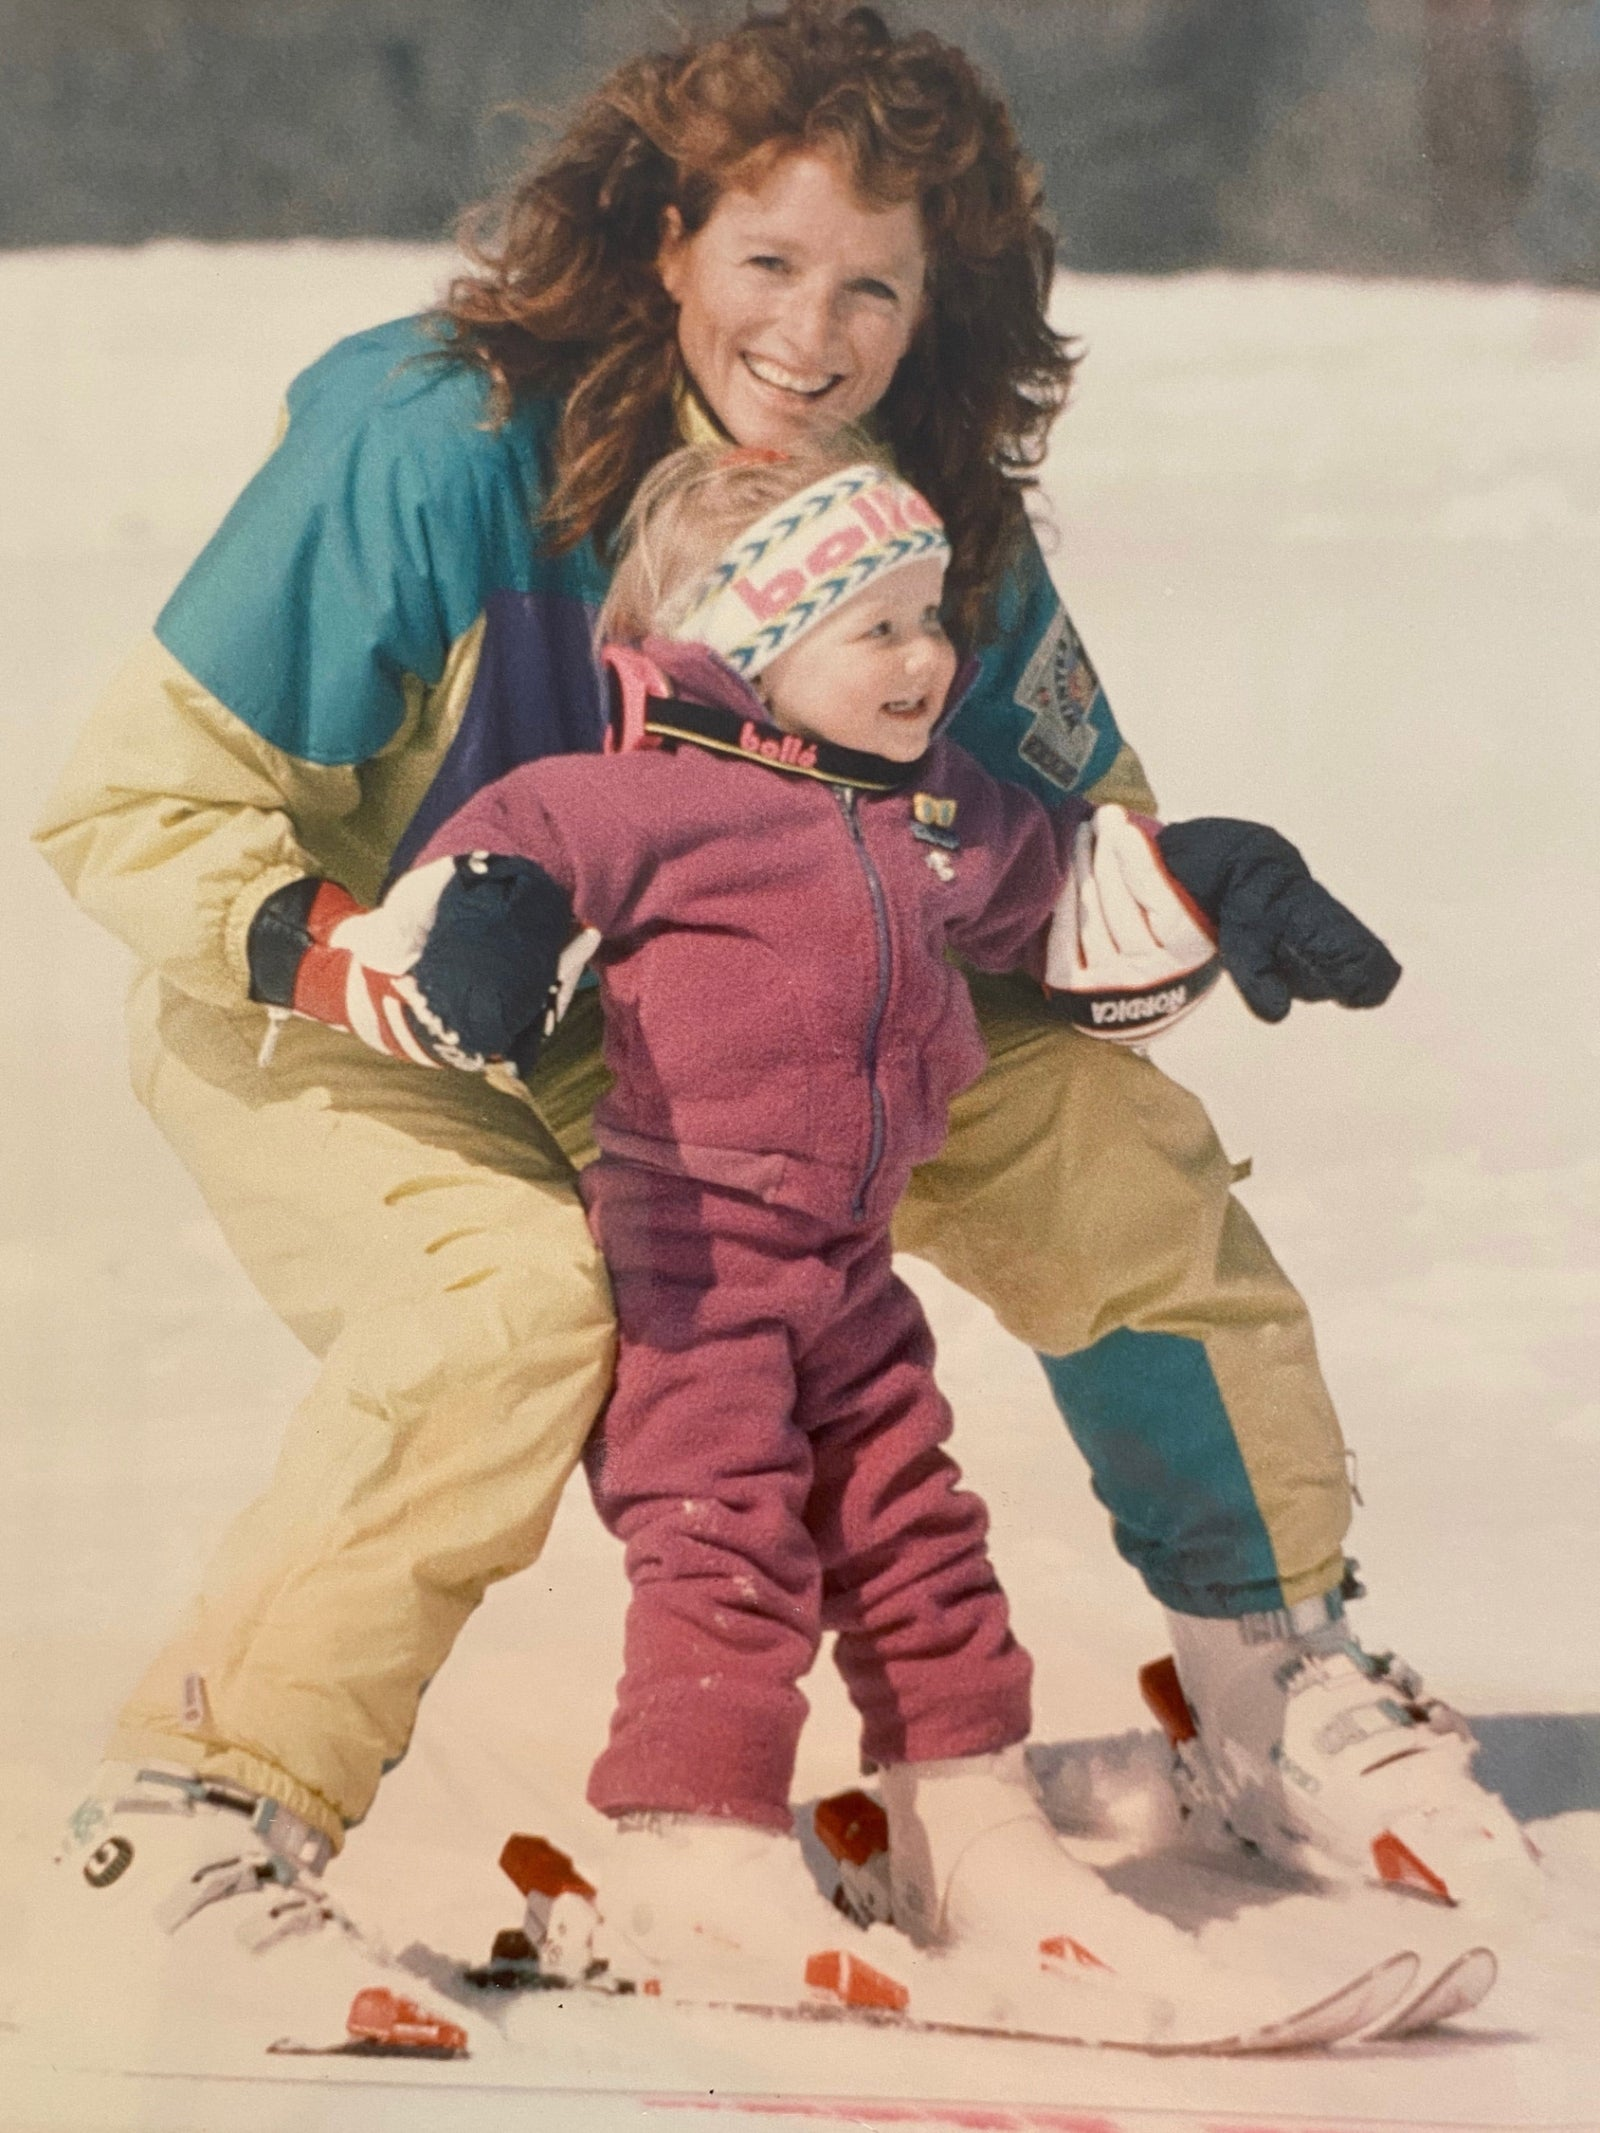 Straight from the Natasha Woodworth Archive Collection: a shoebox. Tasha's mom, Viki Fleckenstein Woodworth (pictured), sent this photo of her and a young Tasha skiing in Vermont. Photo: Dad, aka Richie Woodworth.